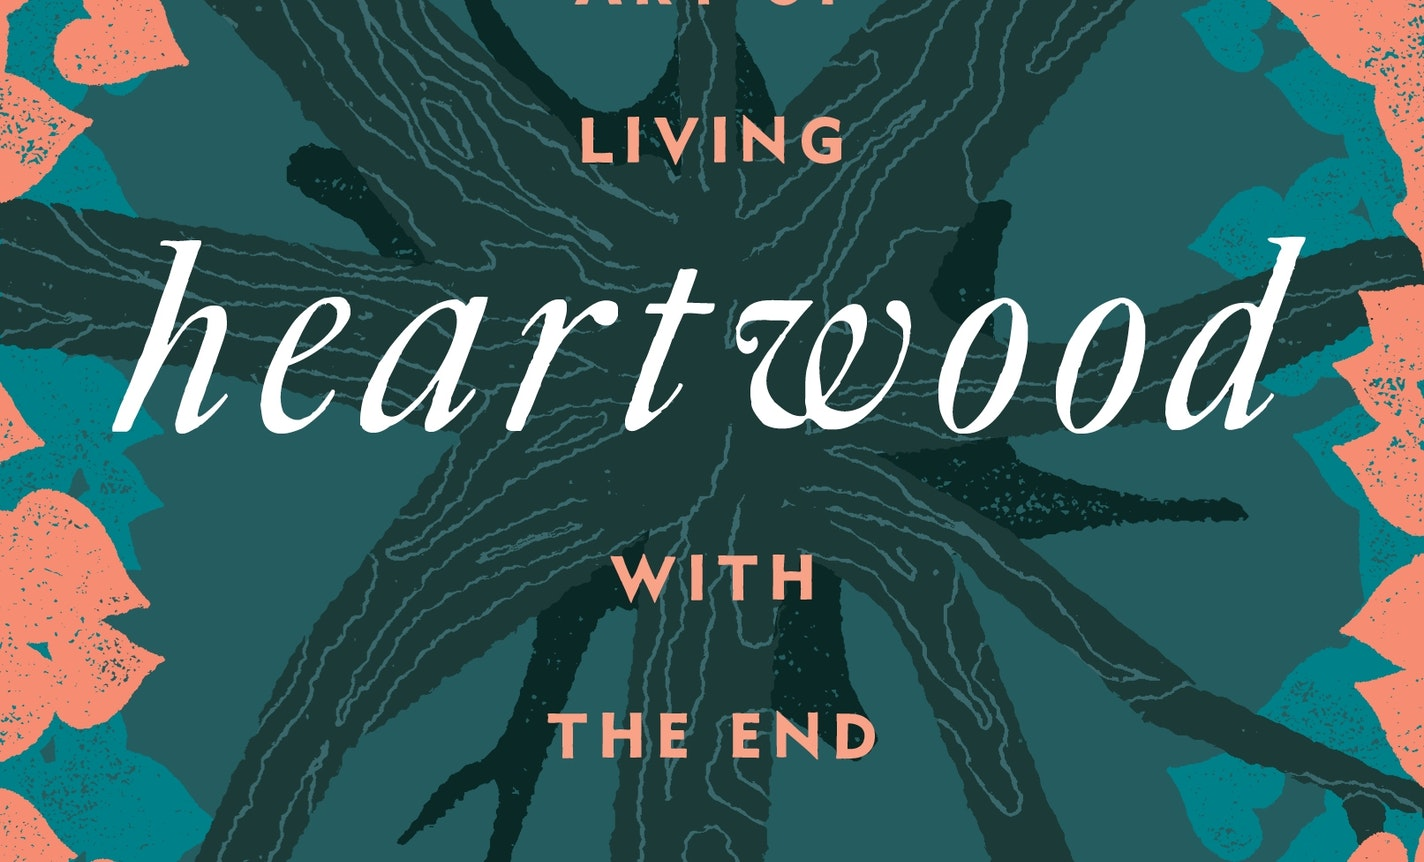 Heartwood: Evening on the Art of Living with the End in Mind